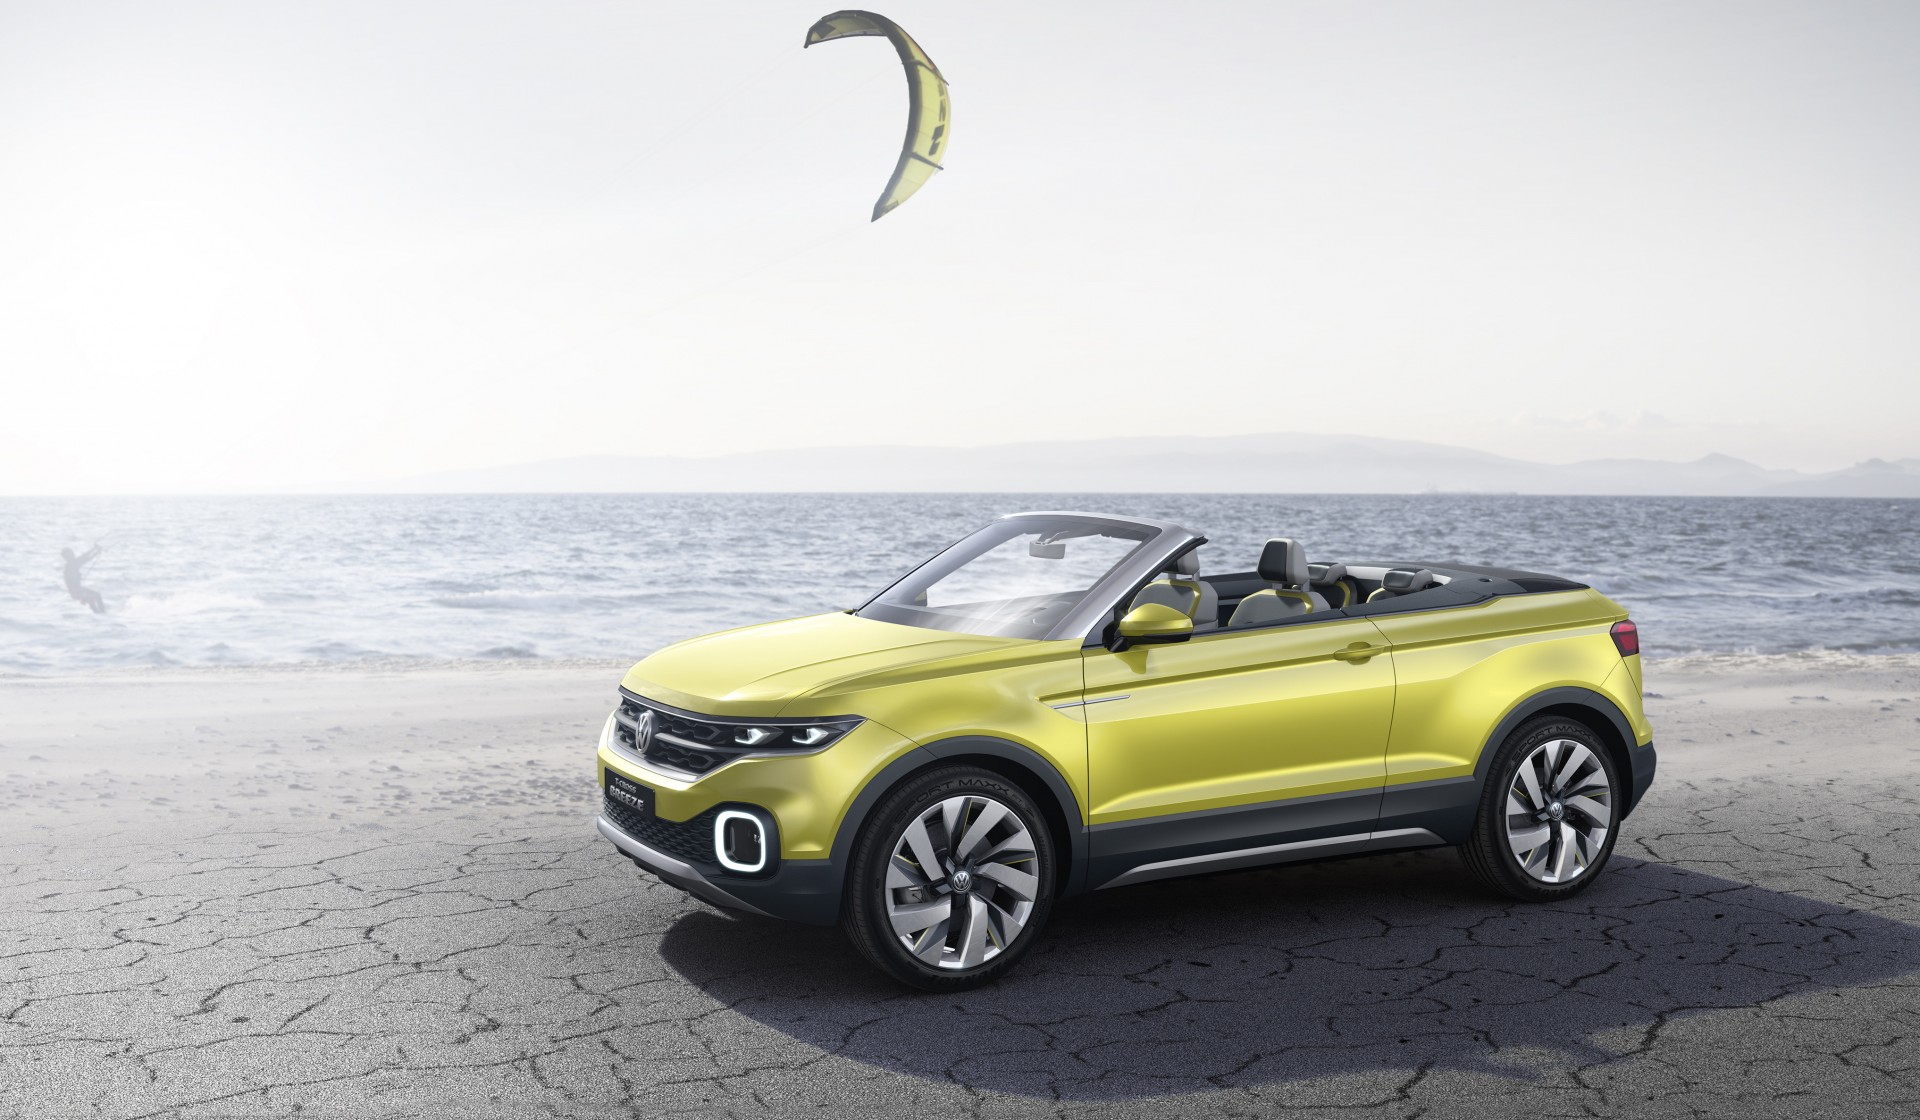 Volkswagen T-Cross Breeze concept car